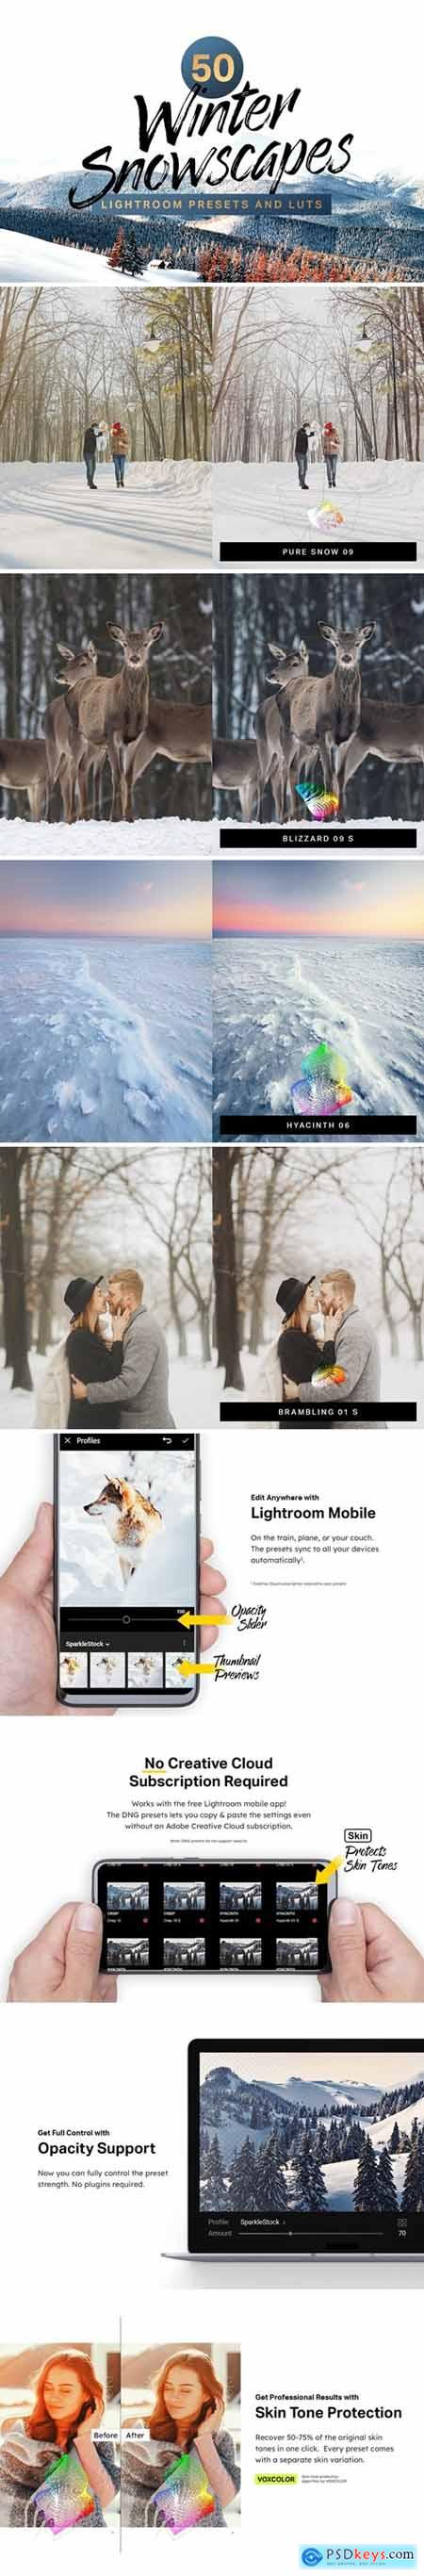 50 Winter Lightroom Presets and LUTs 4285934